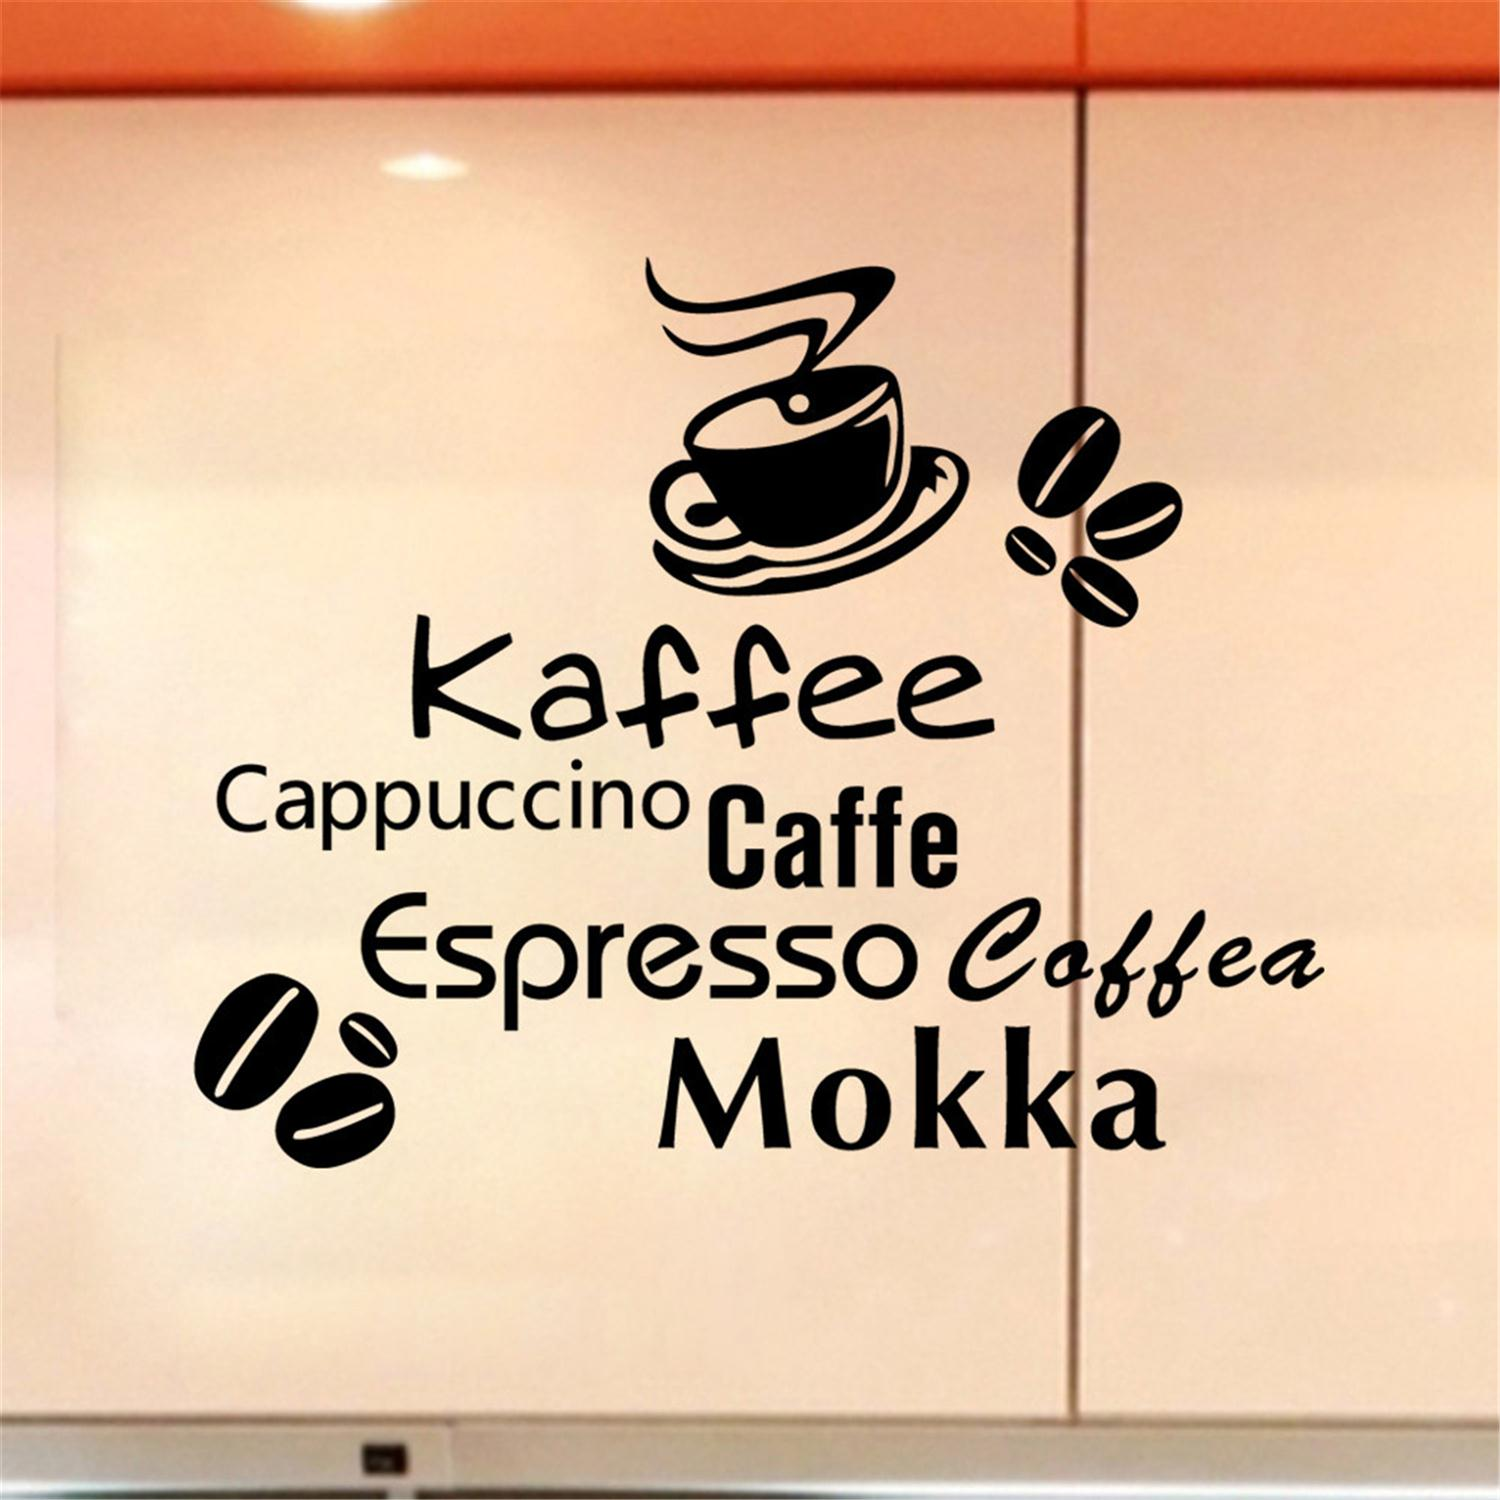 2016 Hot Selling Cute Coffee Shop Wall Stickers Waterproof Kitchen Wall Sticker Home Decoration Creative PVC Decal Mural Art(China (Mainland))